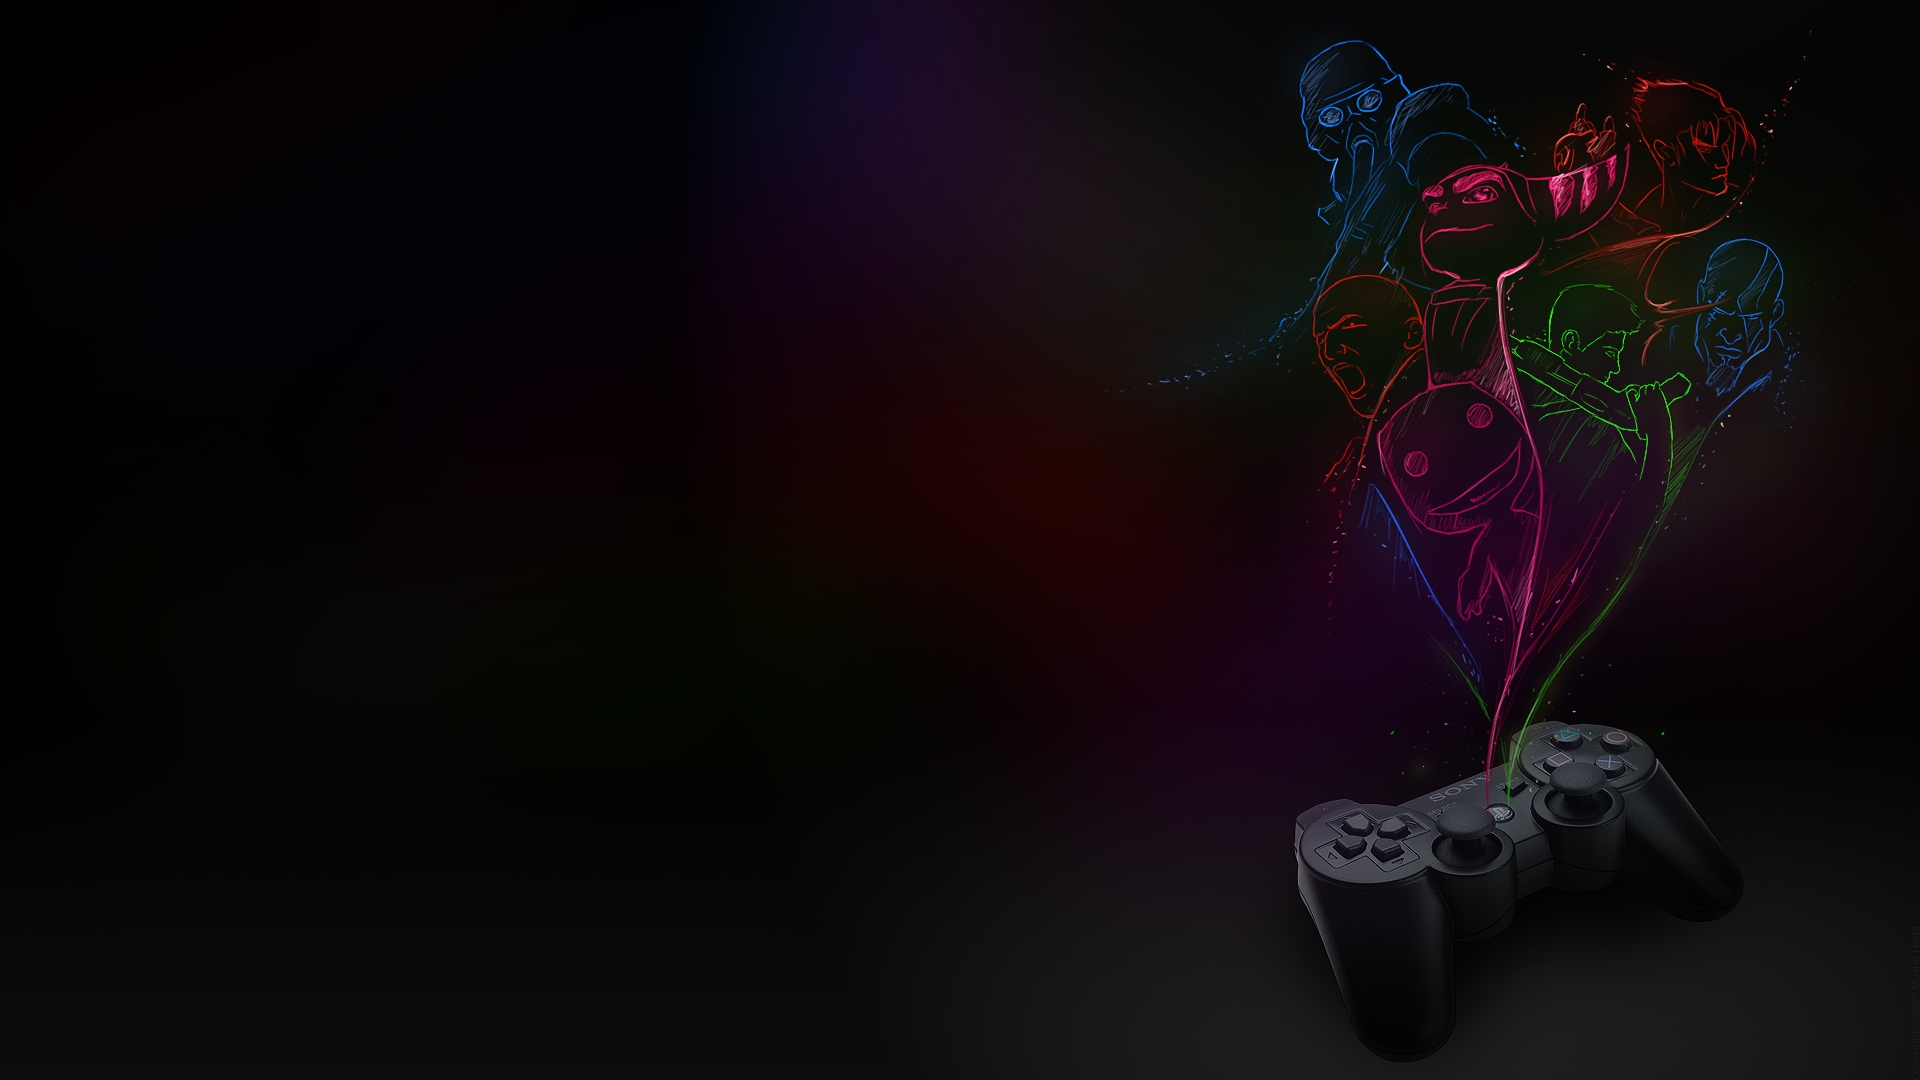 ps3 backgrounds - page 2 of 3 - wallpaper.wiki